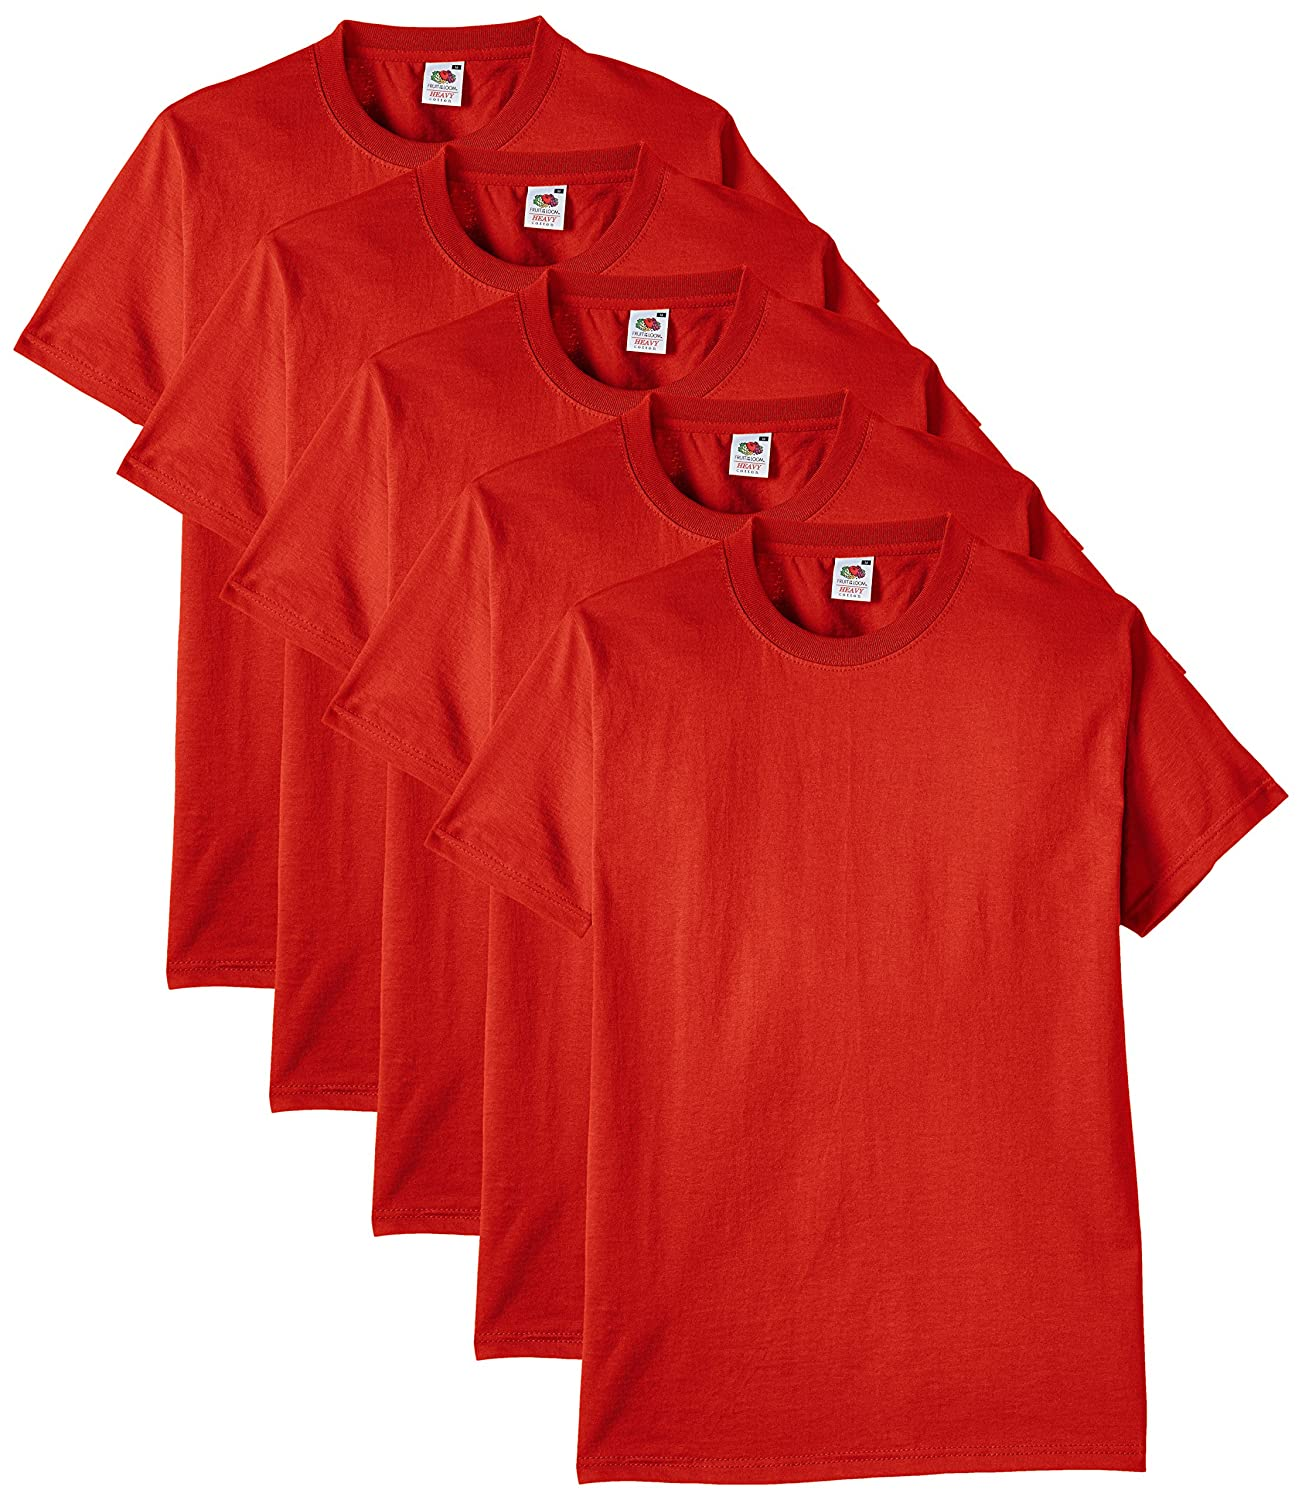 Fruit of the Loom Men's Heavy T-Shirt Pack of 5 61-212-0